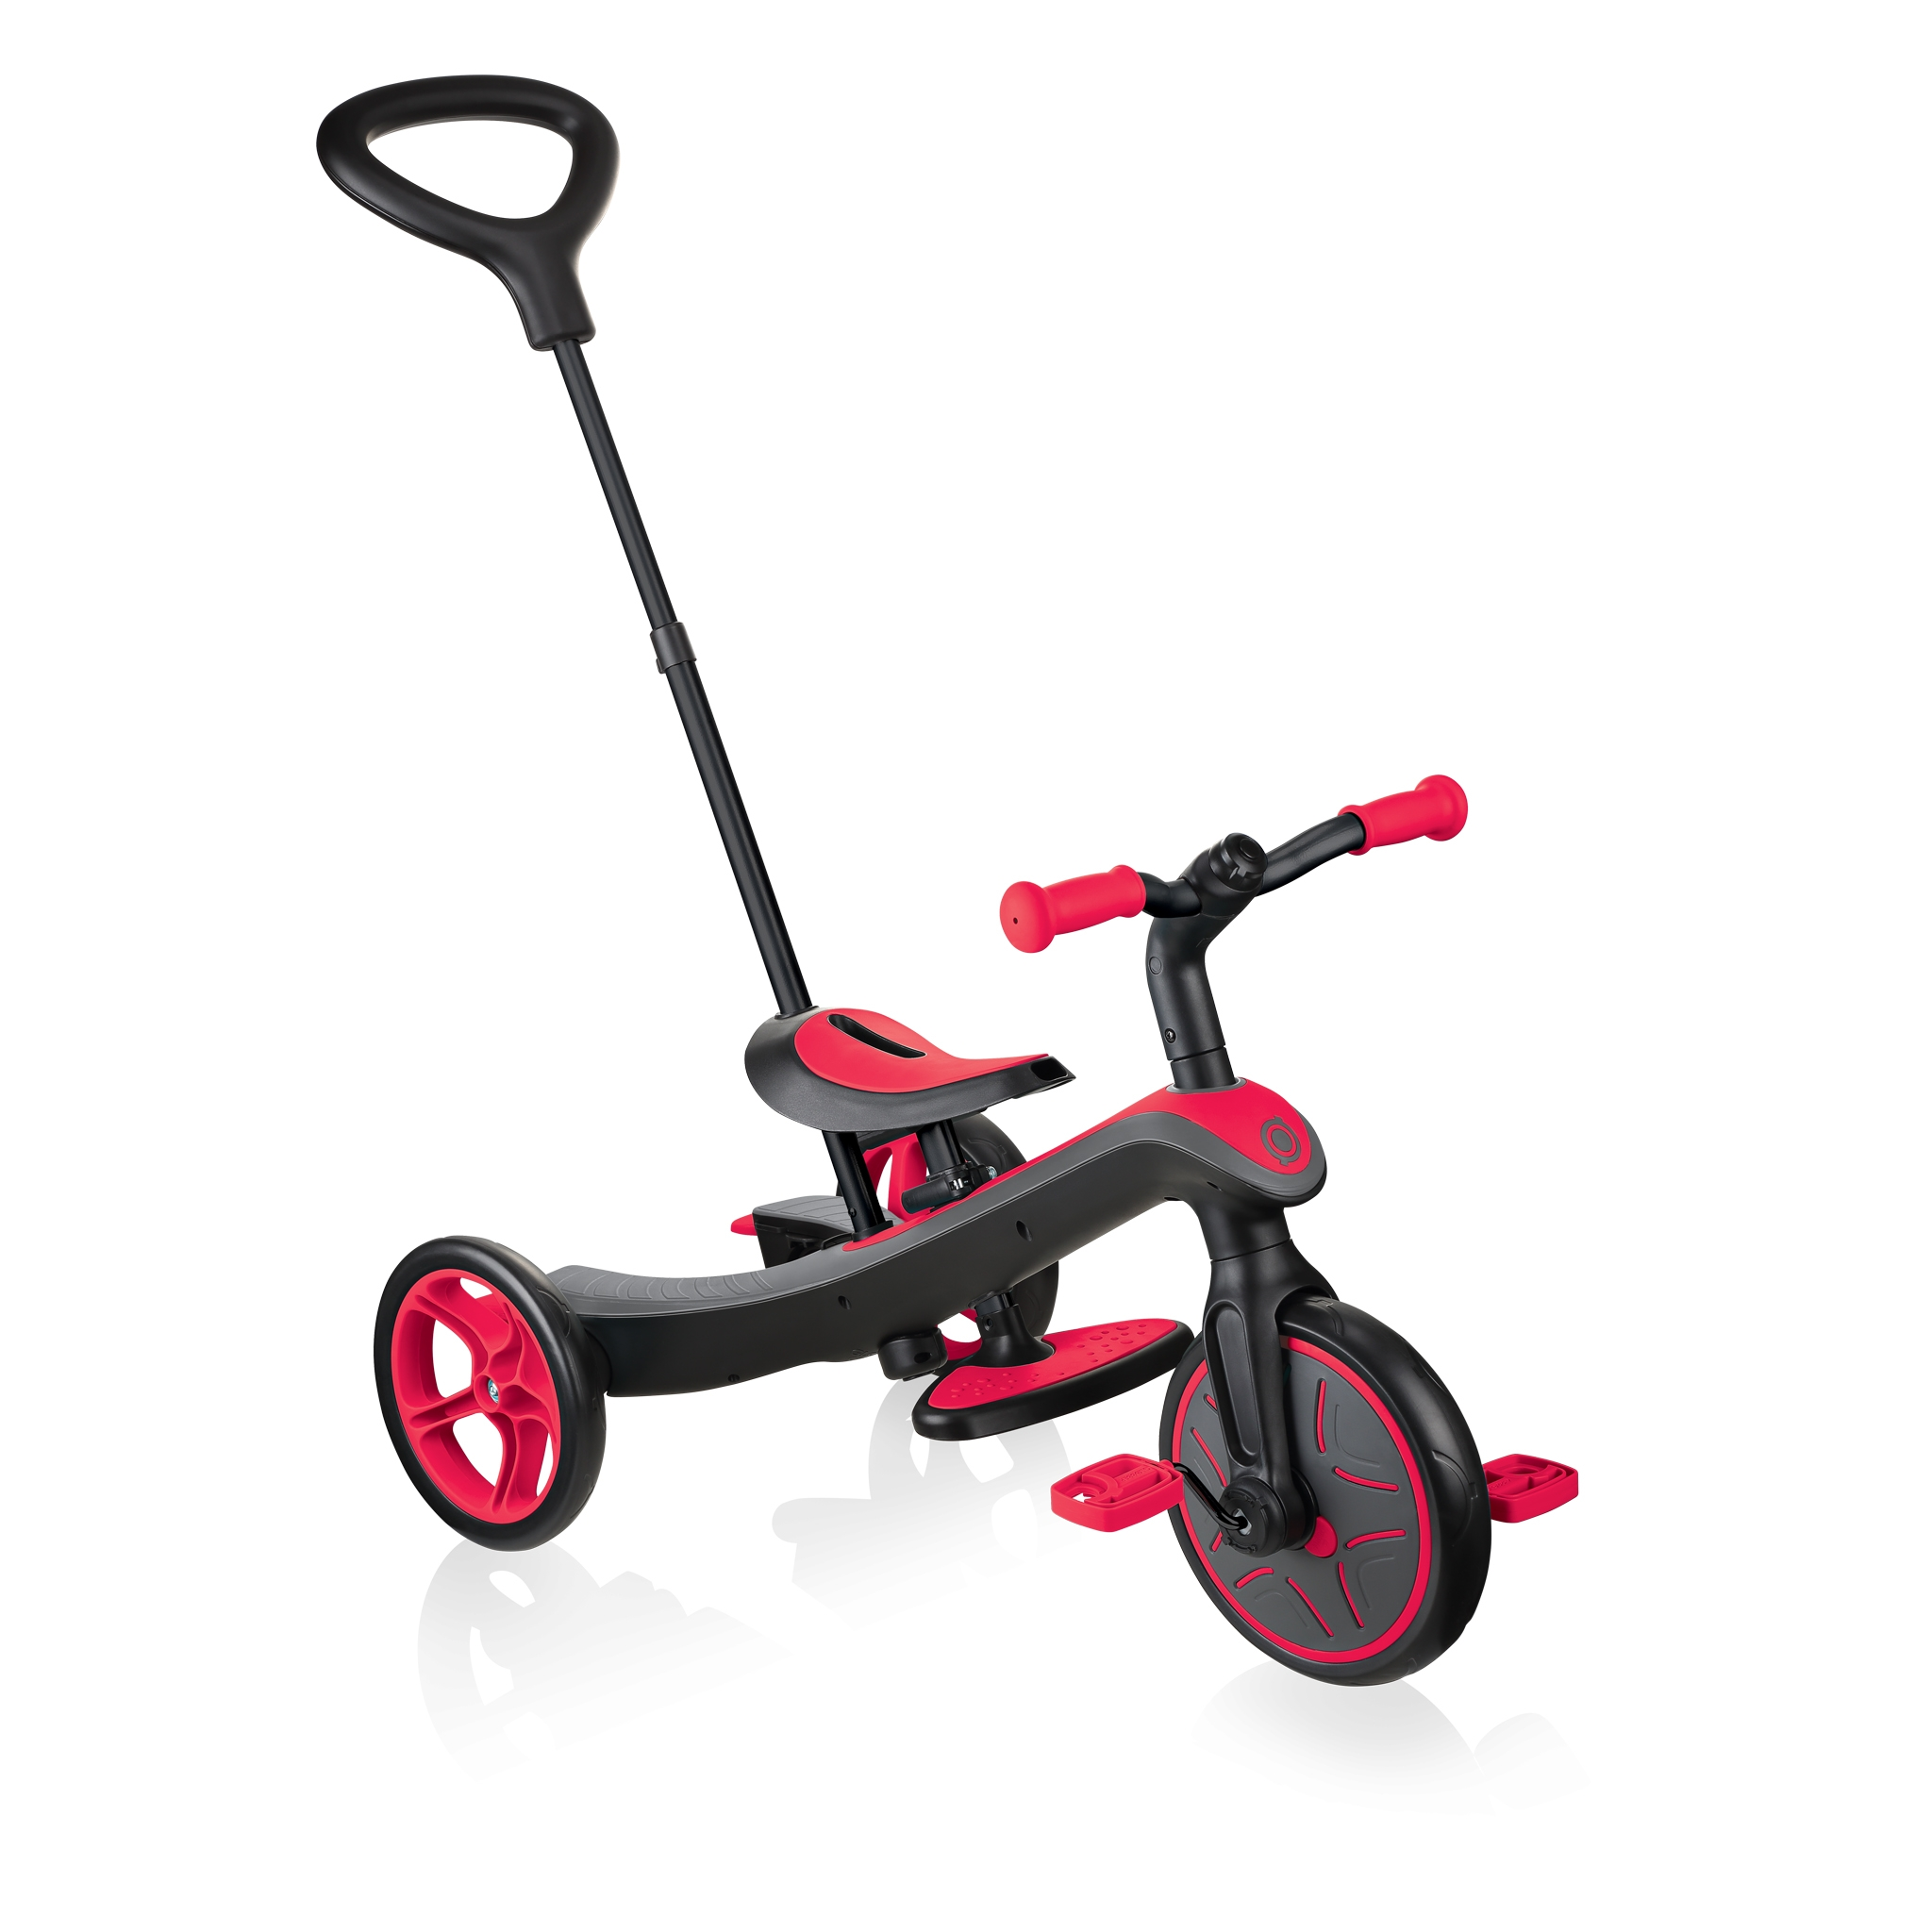 Globber-EXPLORER-TRIKE-4in1-all-in-one-baby-tricycle-and-kids-balance-bike-stage2-guided-trike 1